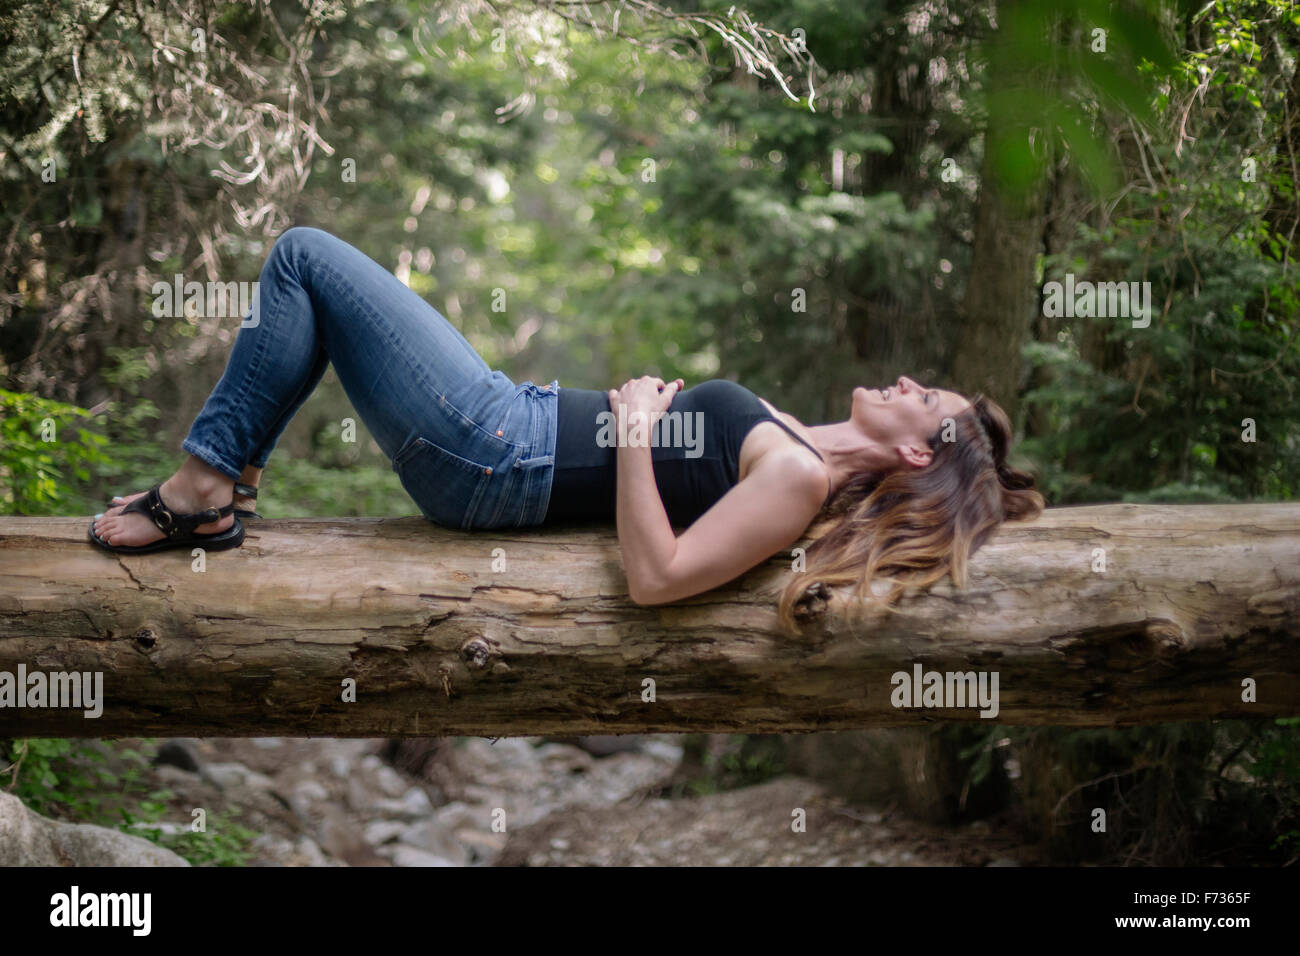 Woman lying on her back on a tree in a forest. - Stock Image